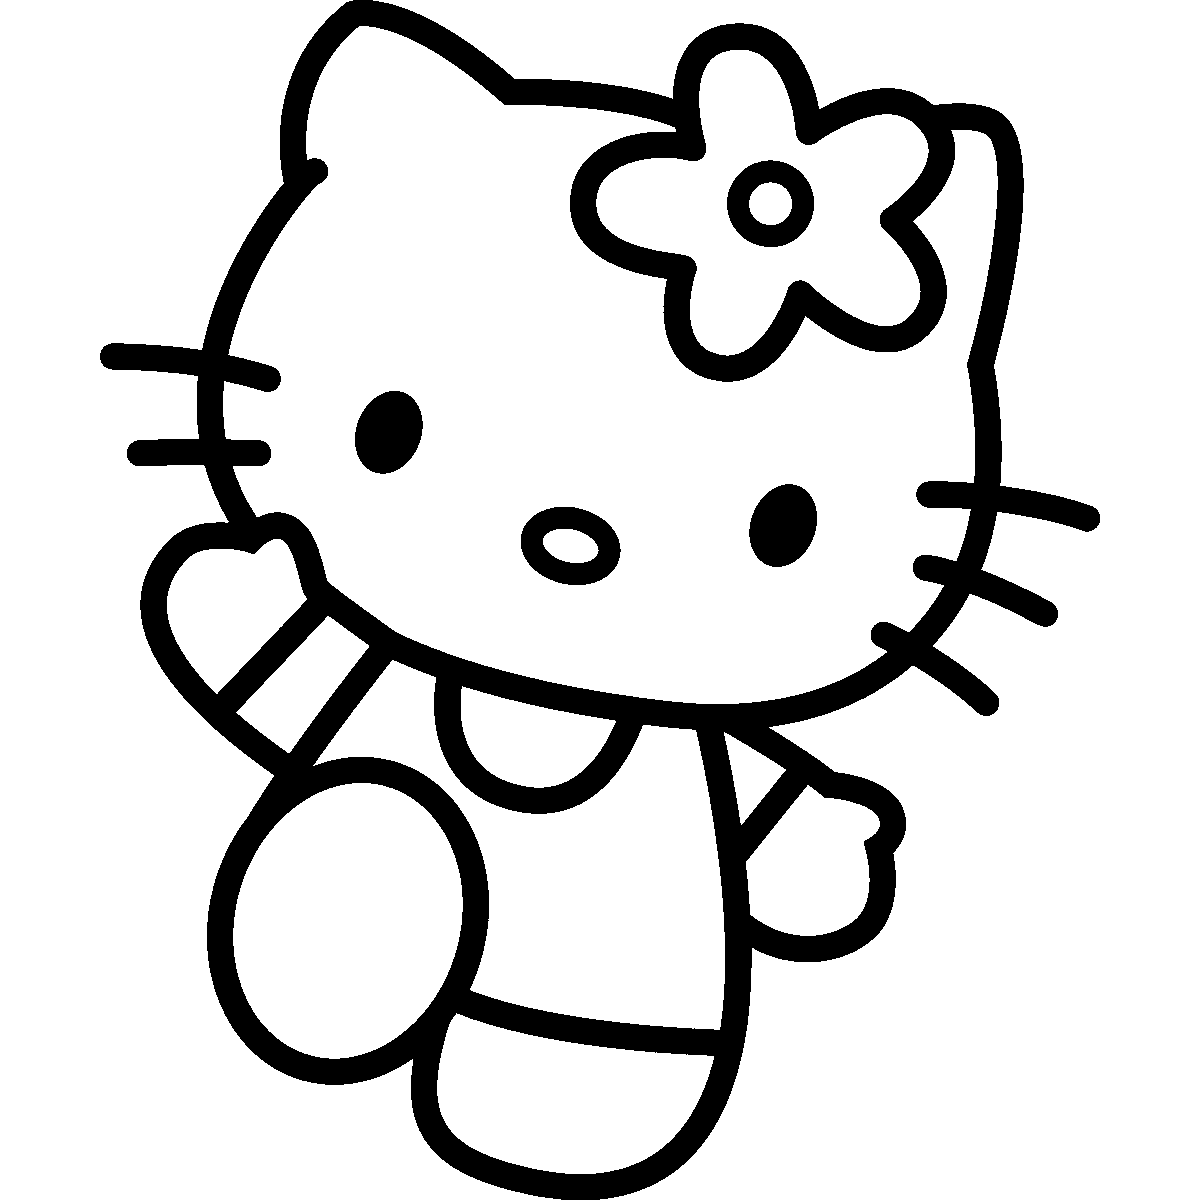 hello kitty outline picture hello kitty line drawing free download on clipartmag picture hello kitty outline